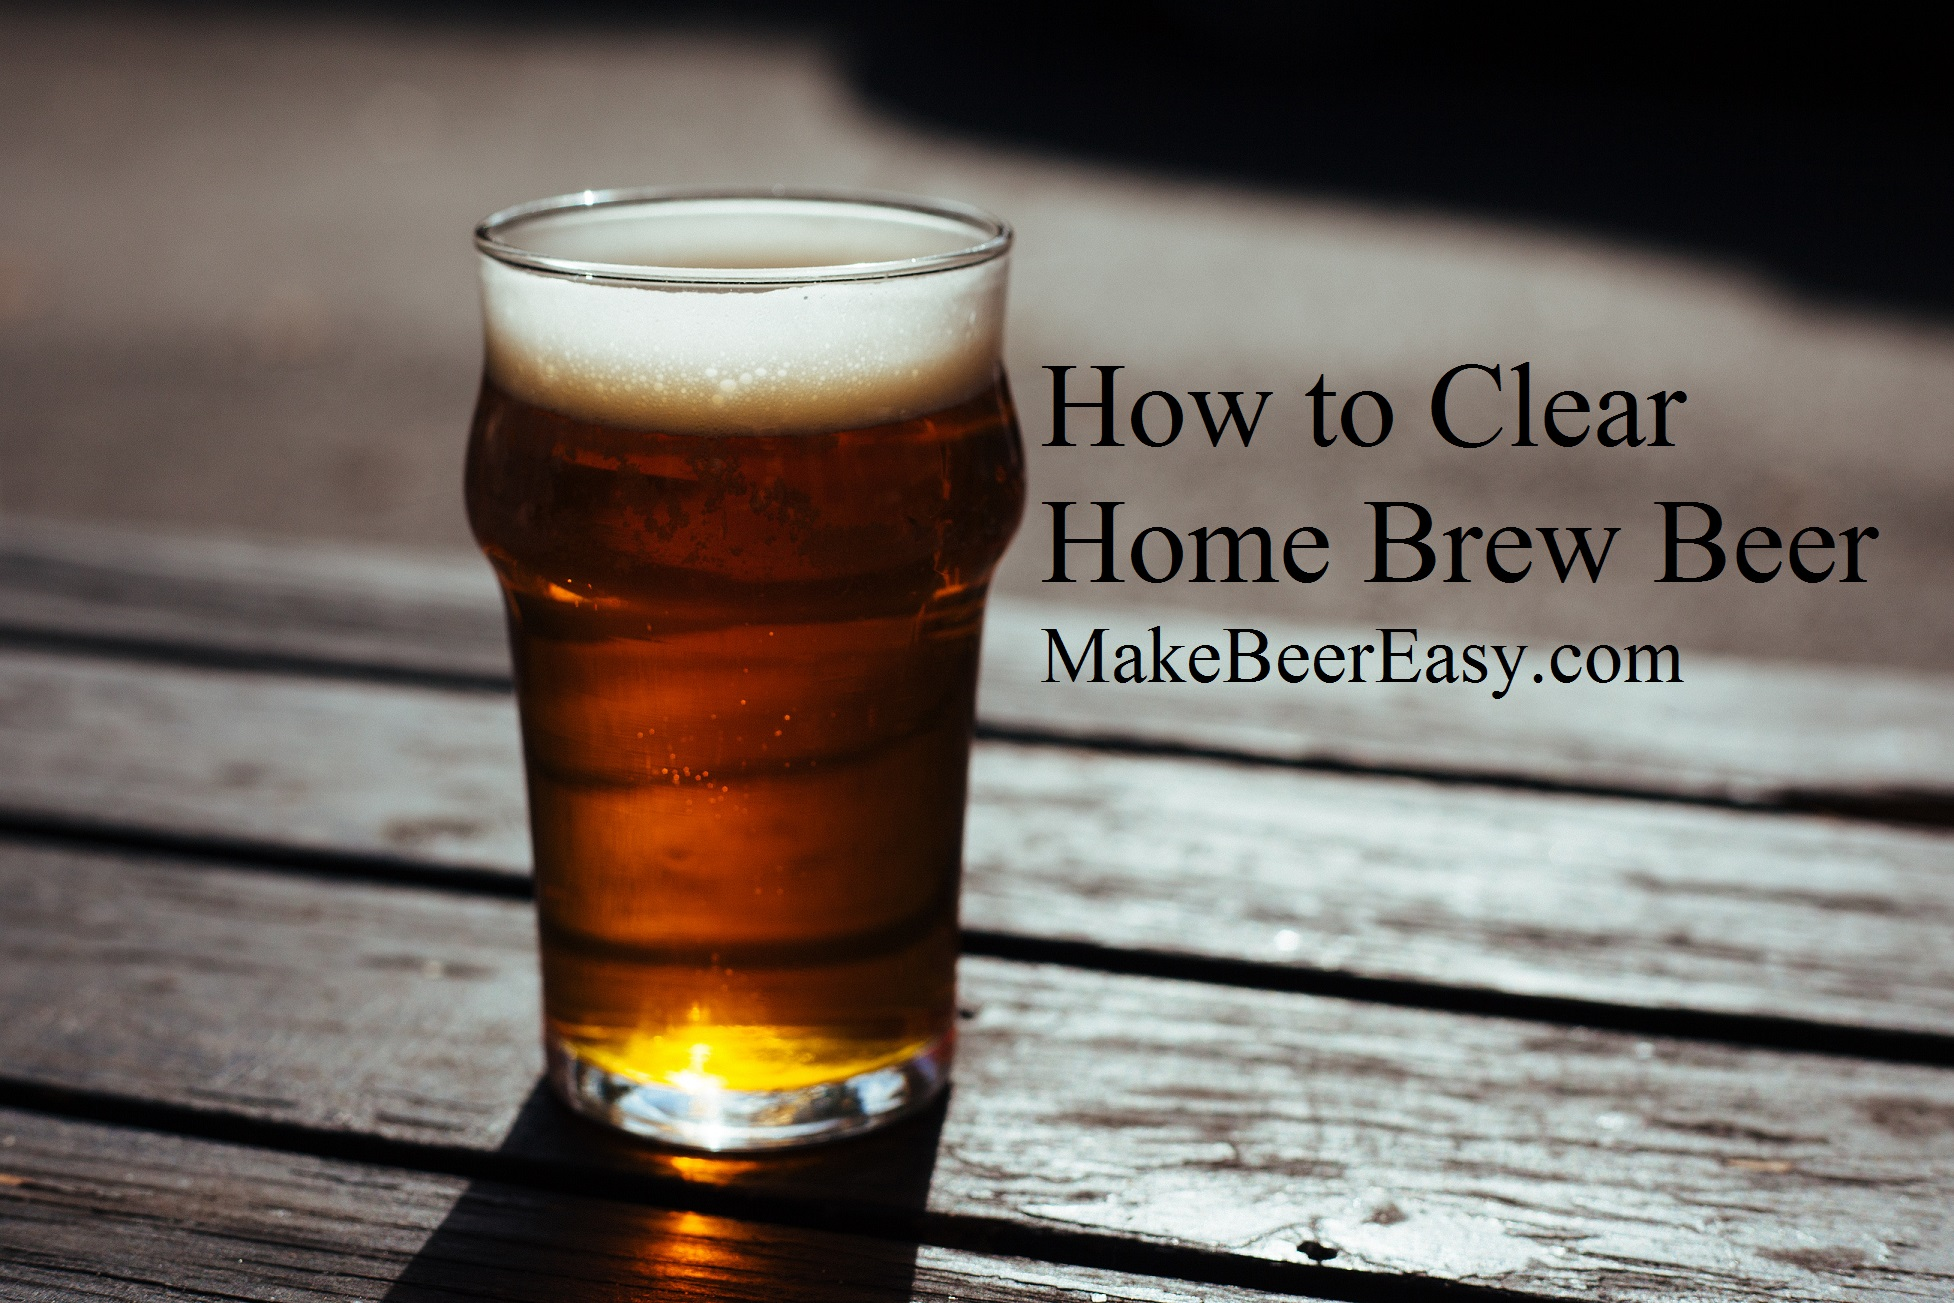 How to Clear Home Brew Beer